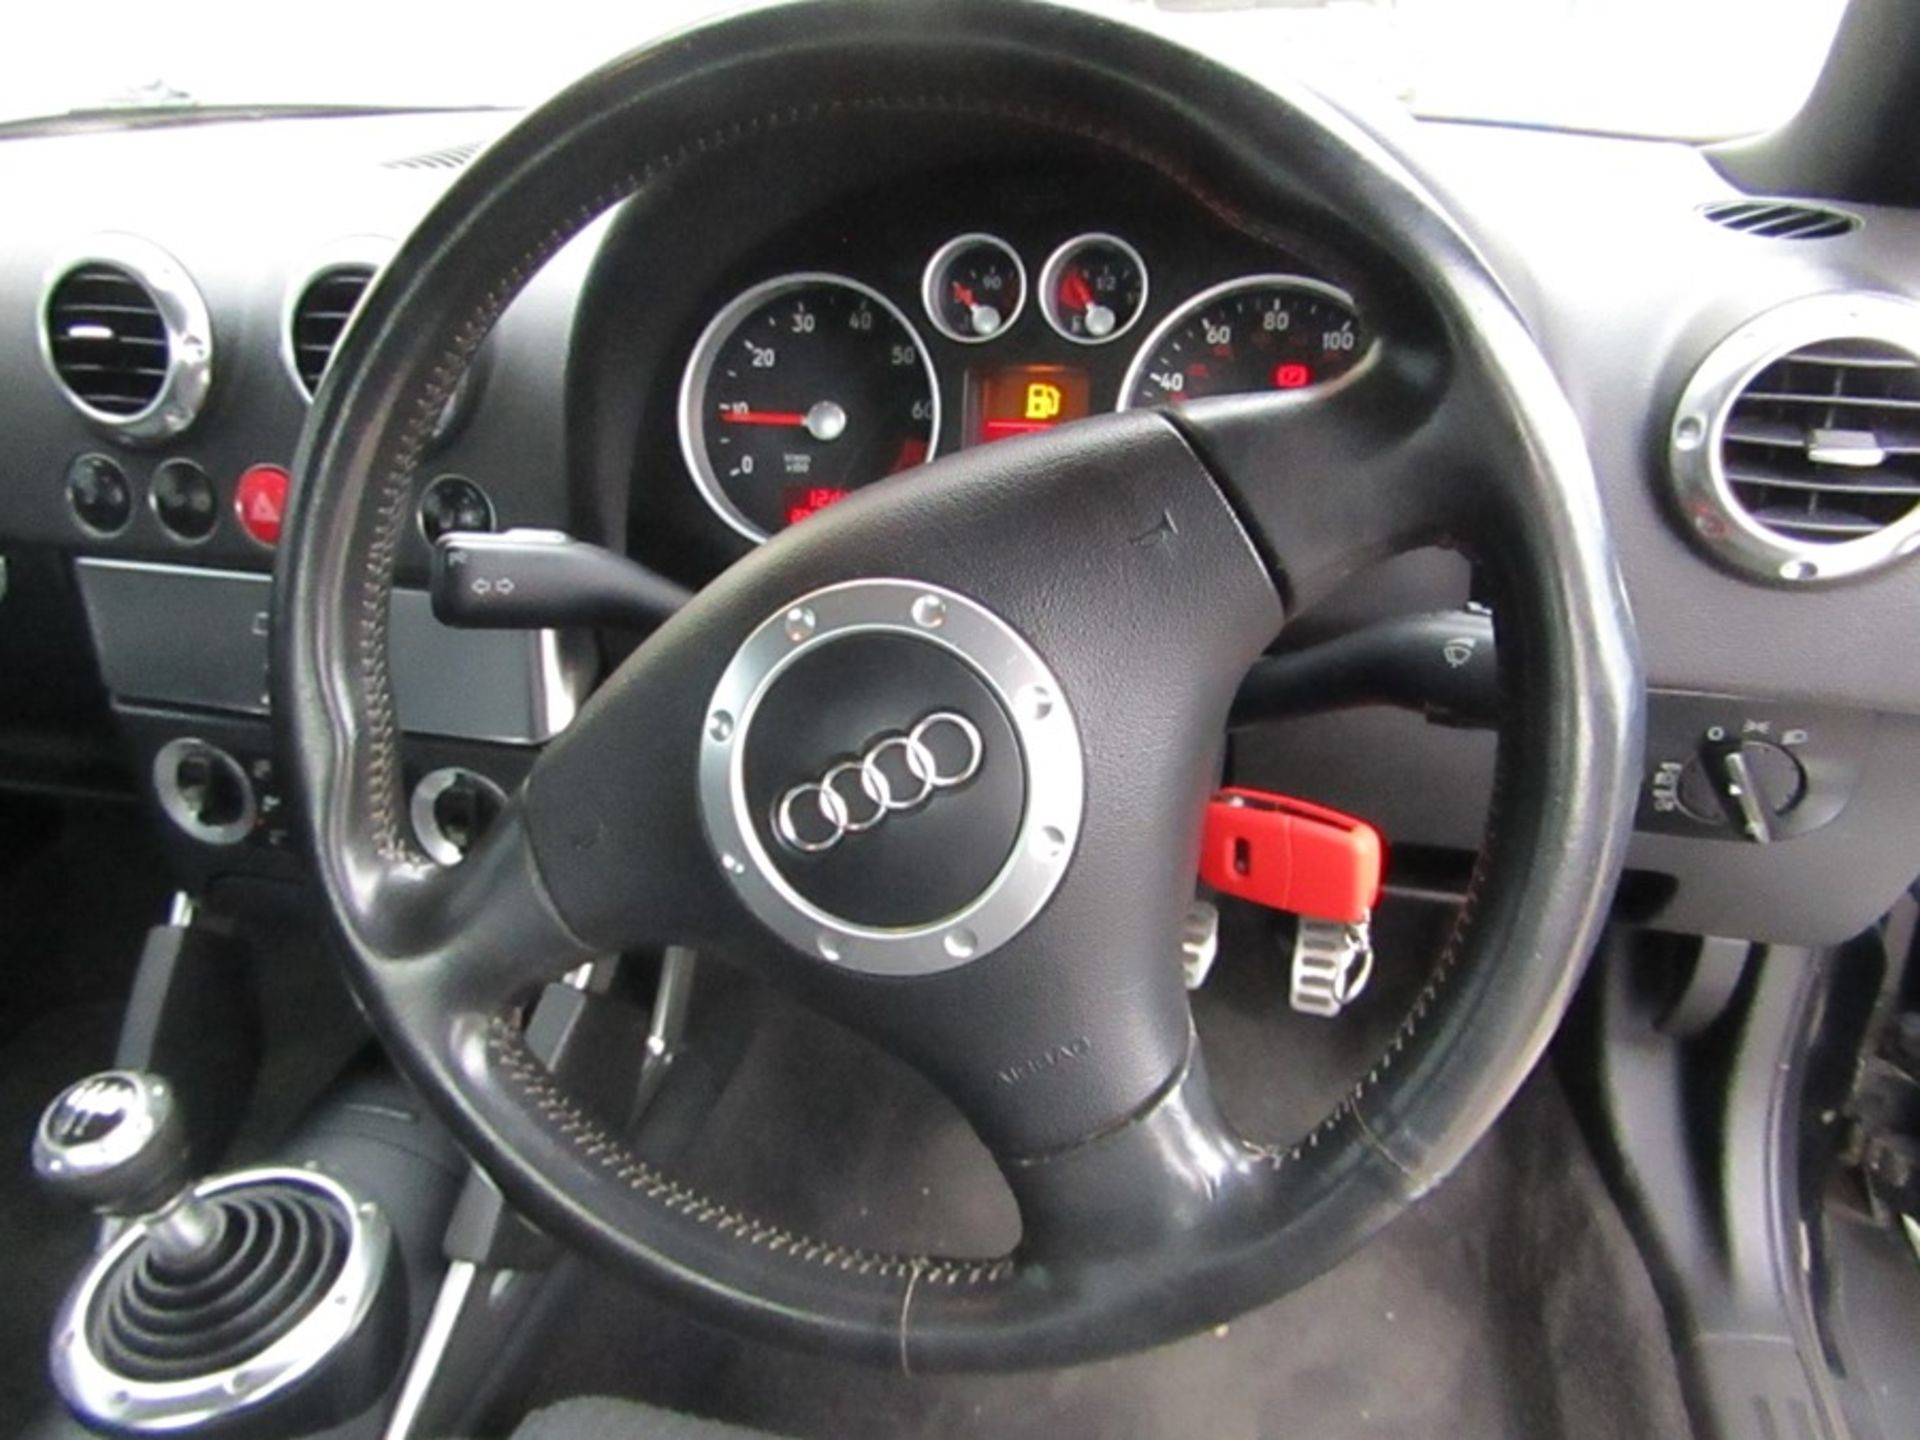 2005 Audi 1.8i Convertible roadster, 131,608 Miles (unchecked) MOT until 01/06/2021, Has part - Image 7 of 16